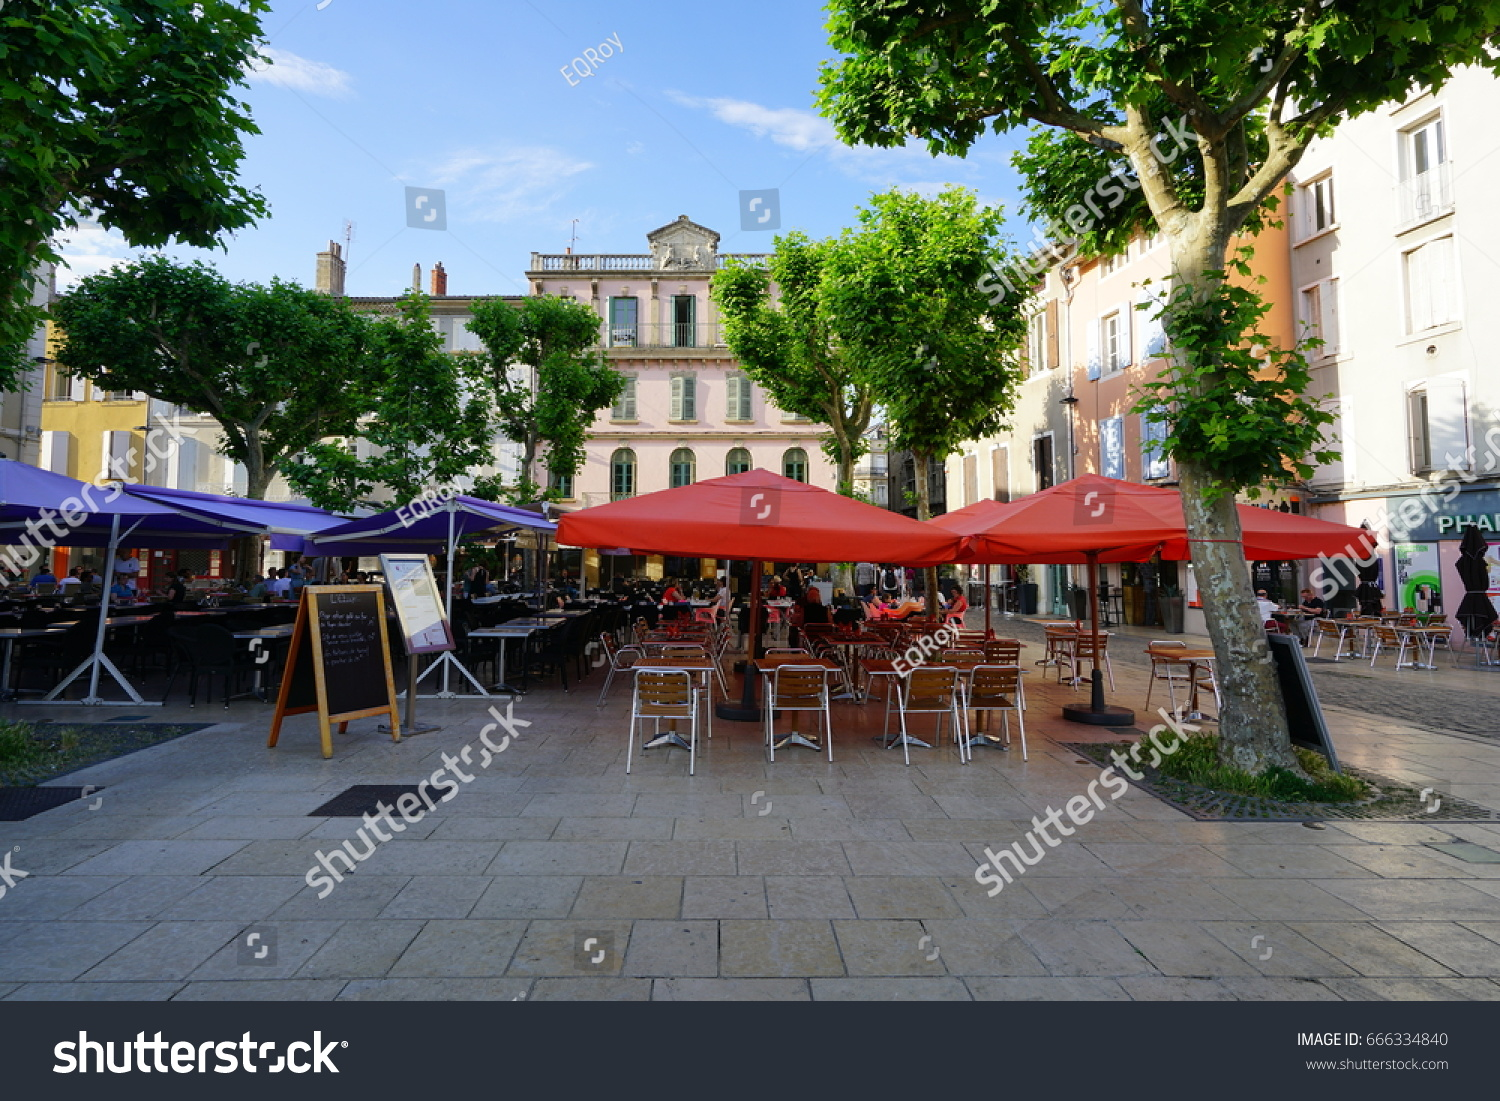 Les Halles Restaurant Valence Valence France 30 May 2017 View Stock Photo Edit Now 666334840